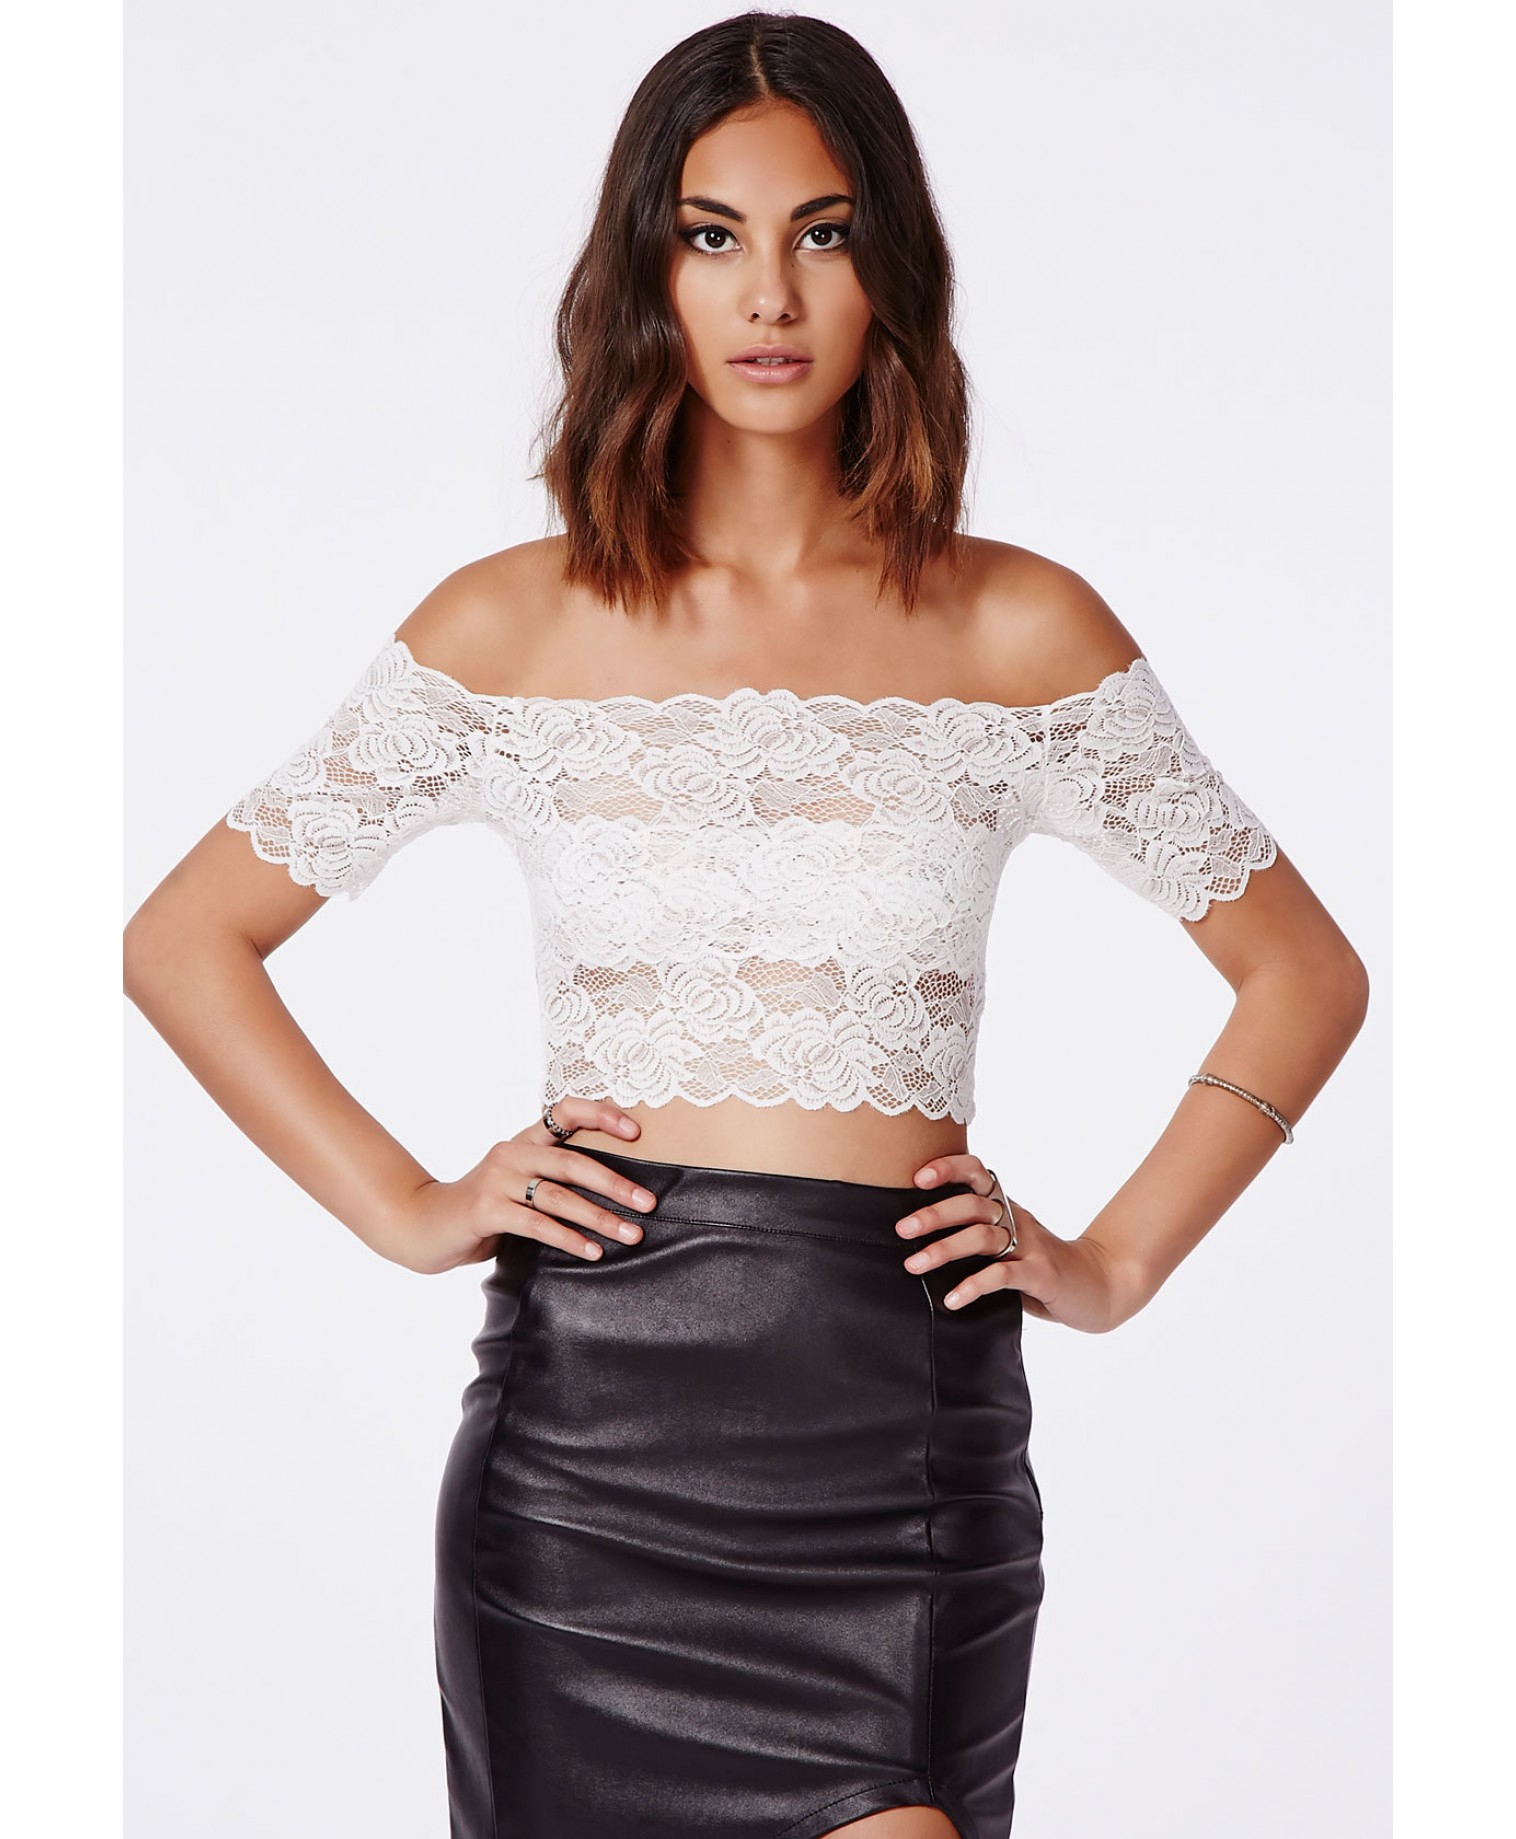 39488dafba7ce Lyst - Missguided Telimesa White Bardot Lace Crop Top in White